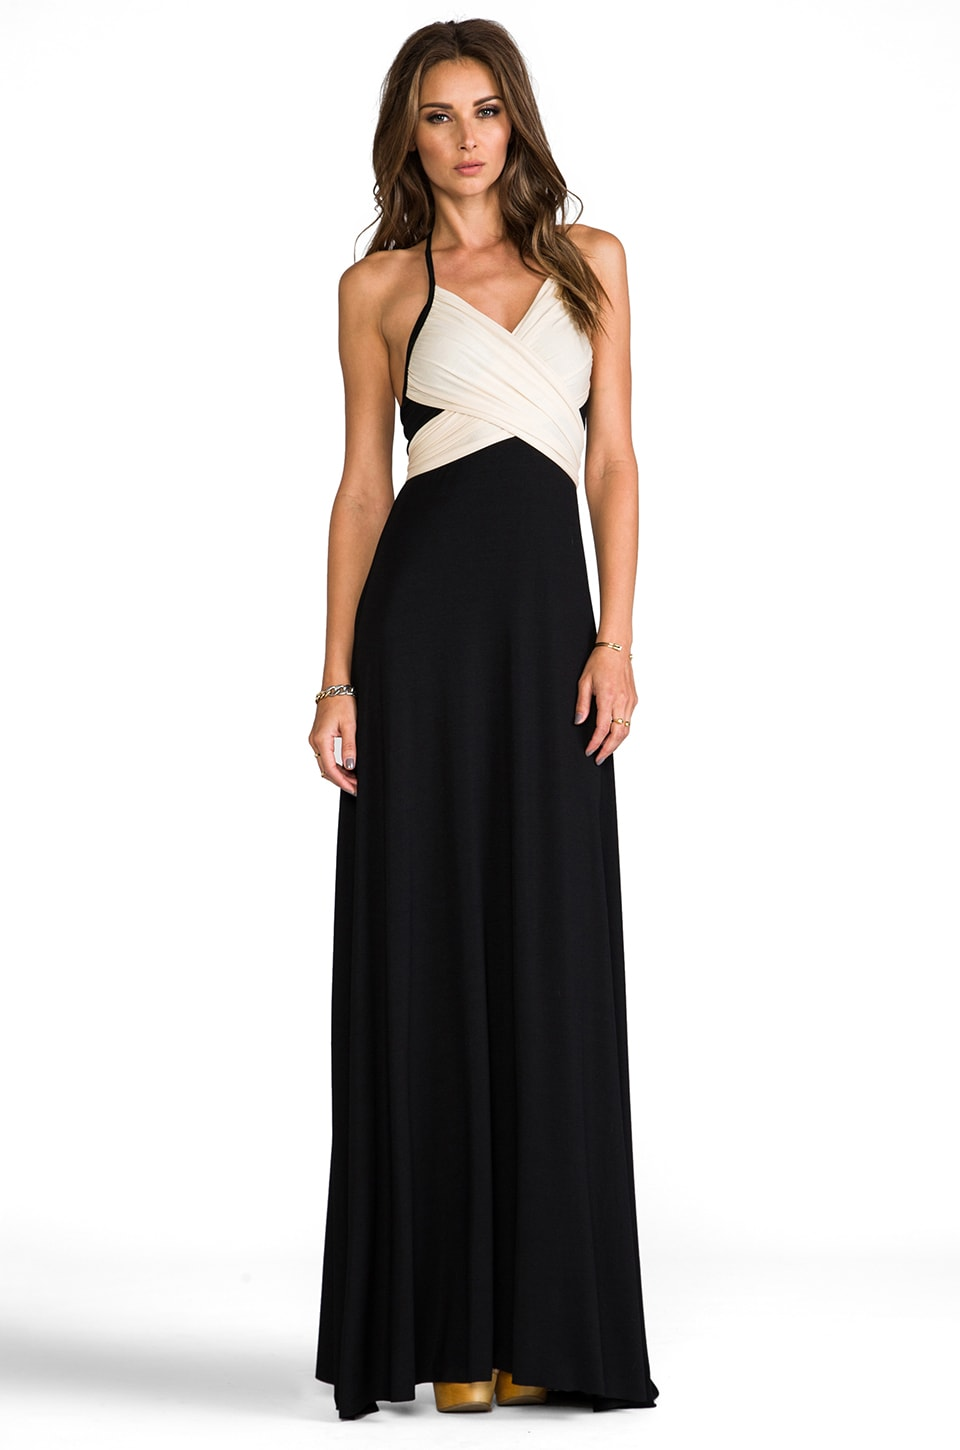 Rachel Pally Two Tone Halter Dress en Noir & Ivoire